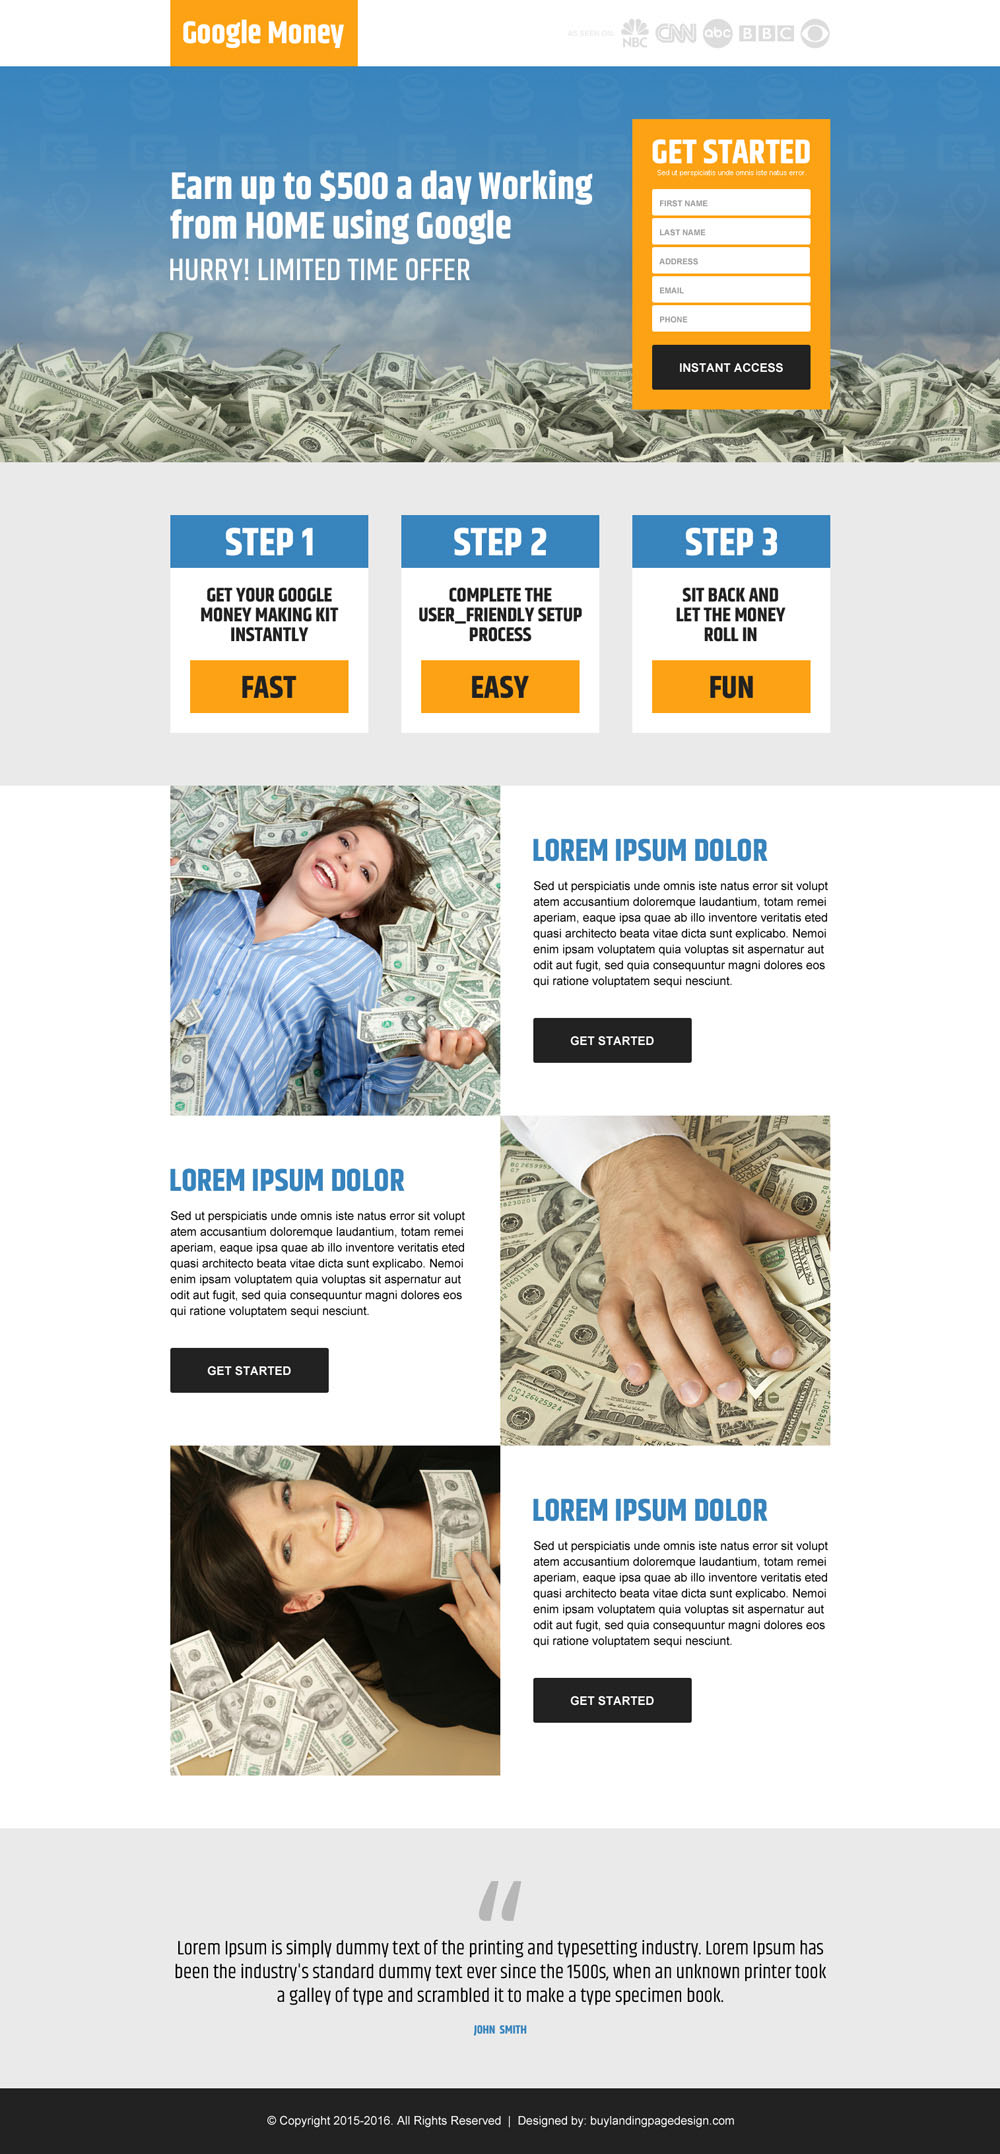 earn-money-using-google-lead-generation-converting-responsive-landing-page-design-002